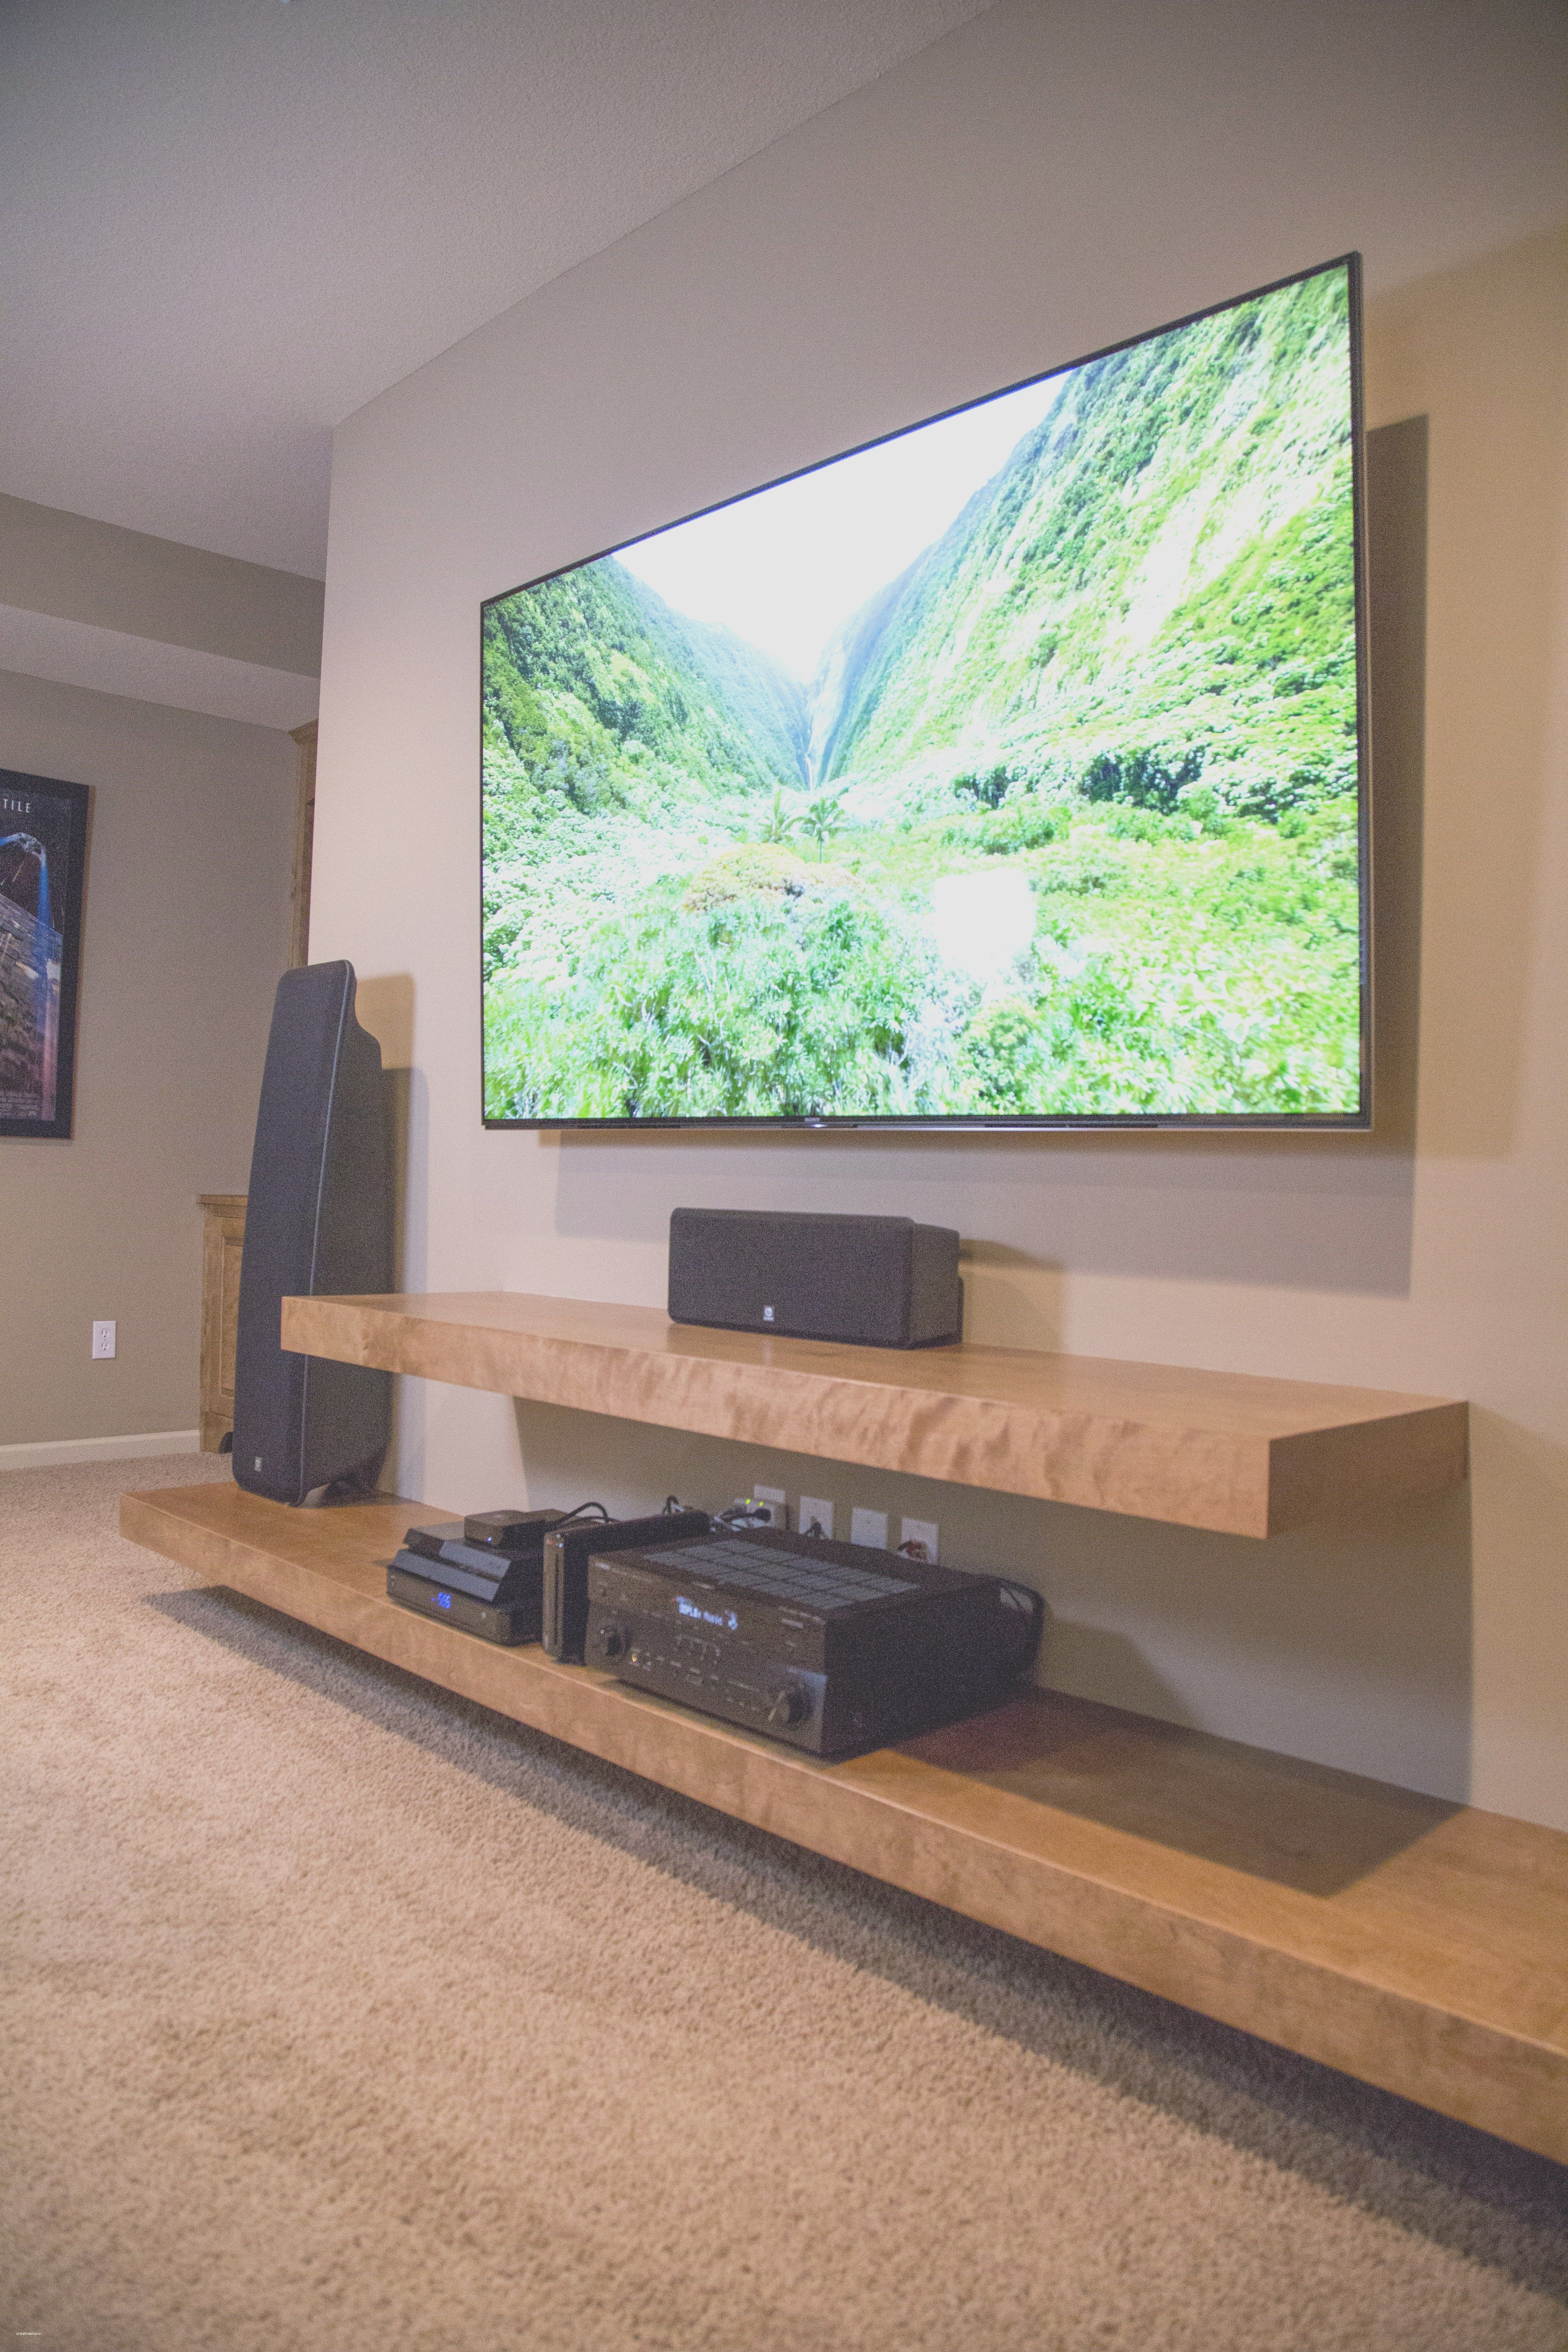 30 Beautiful Diy Tv Stand Ideas For Your Room Interior Living